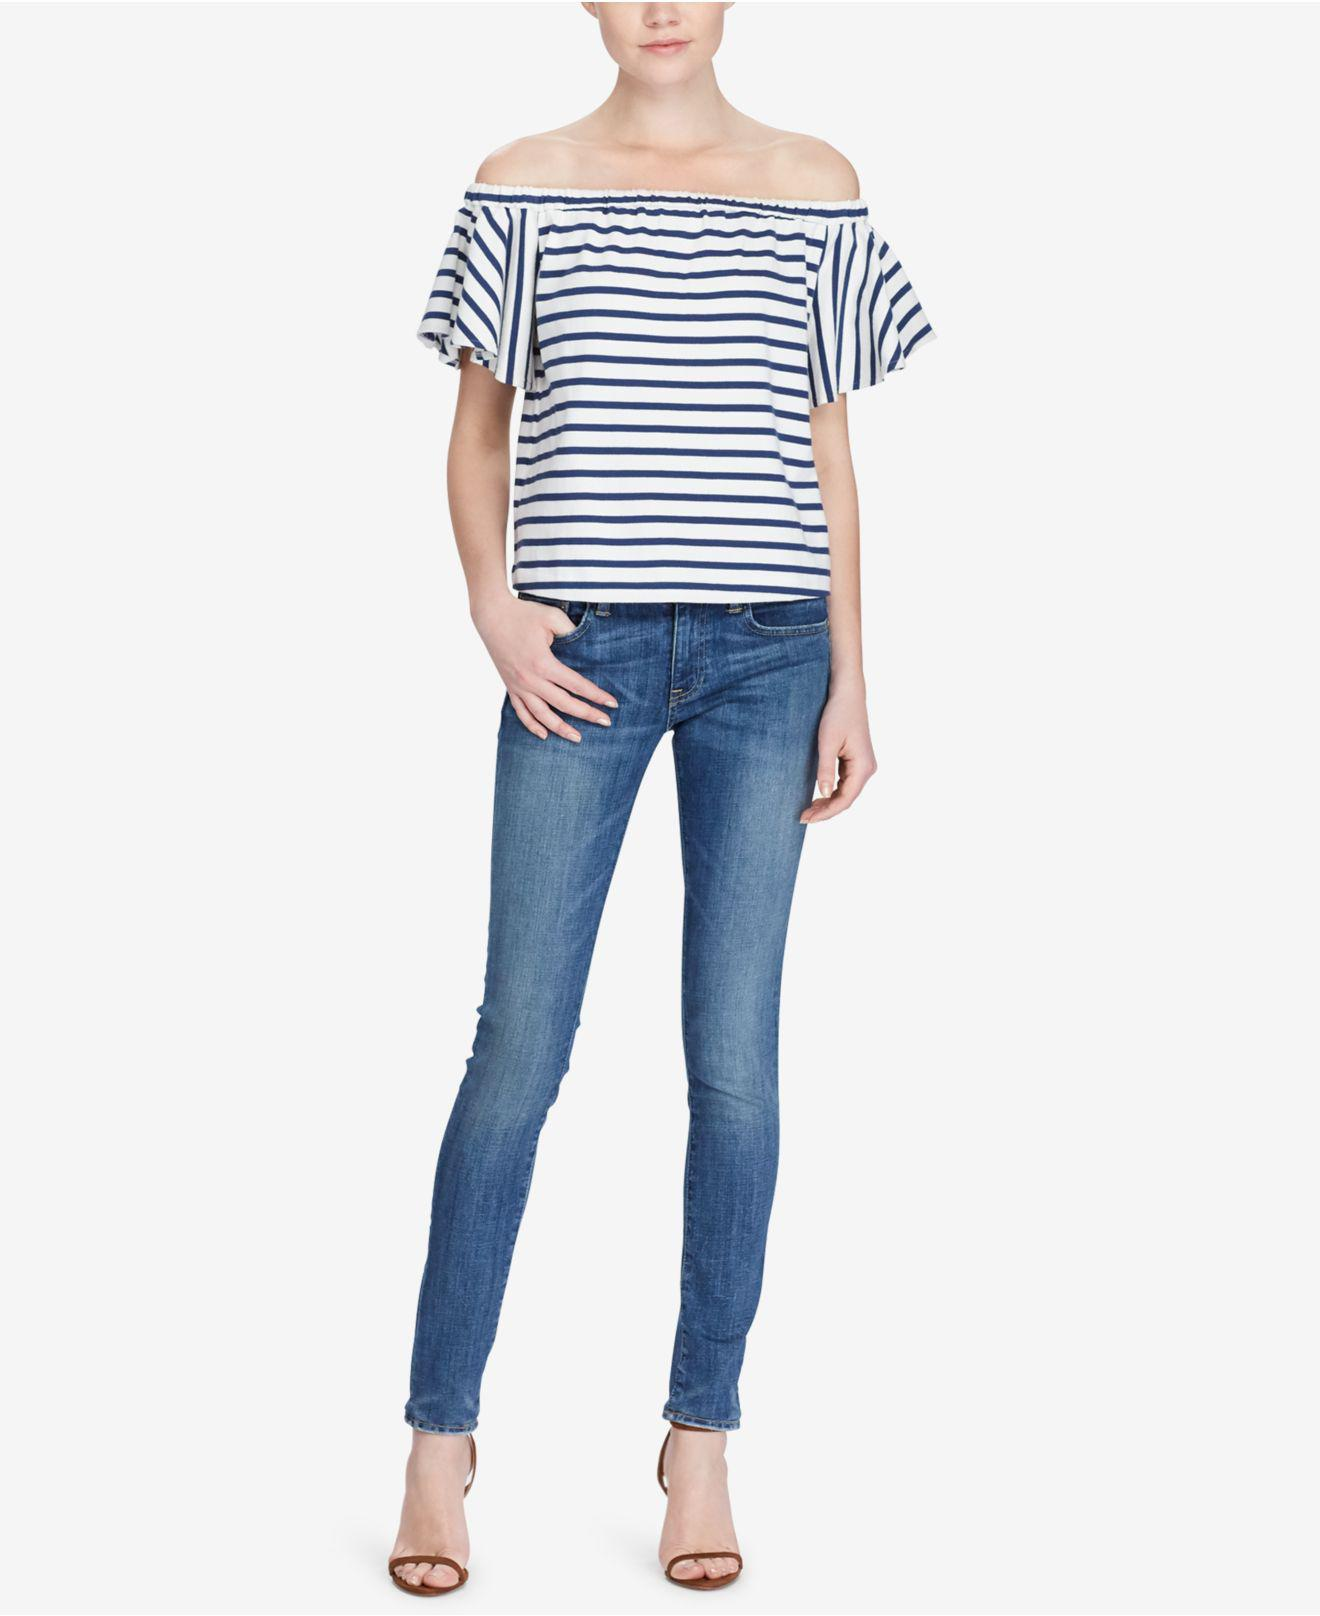 a277fdd682f0f Lyst - Polo Ralph Lauren Striped Off-the-shoulder Top in Blue